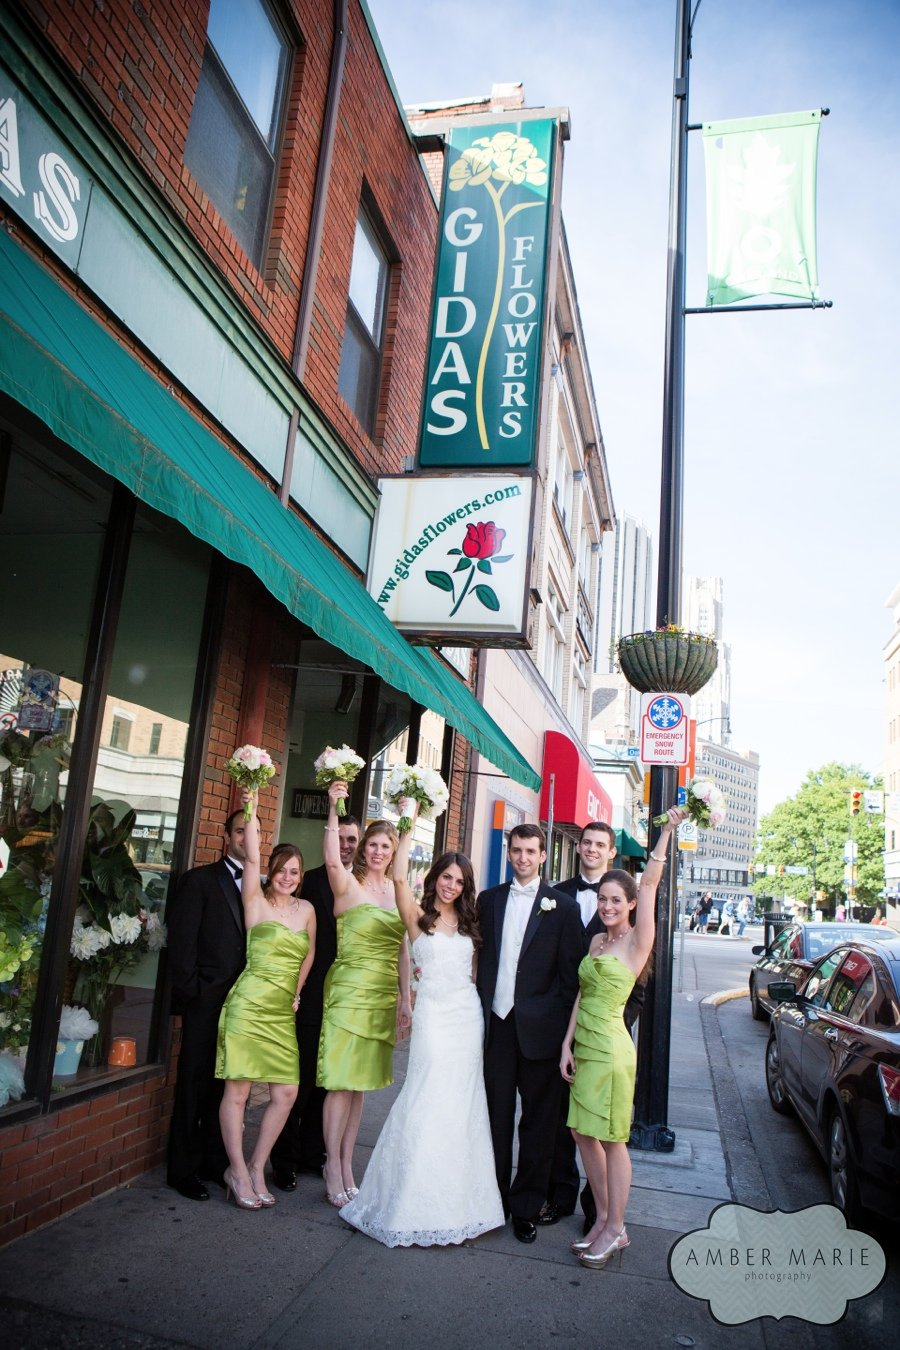 Bride And Groom Wedding Party At Gidas Flowers The Family Business In Pittsburgh